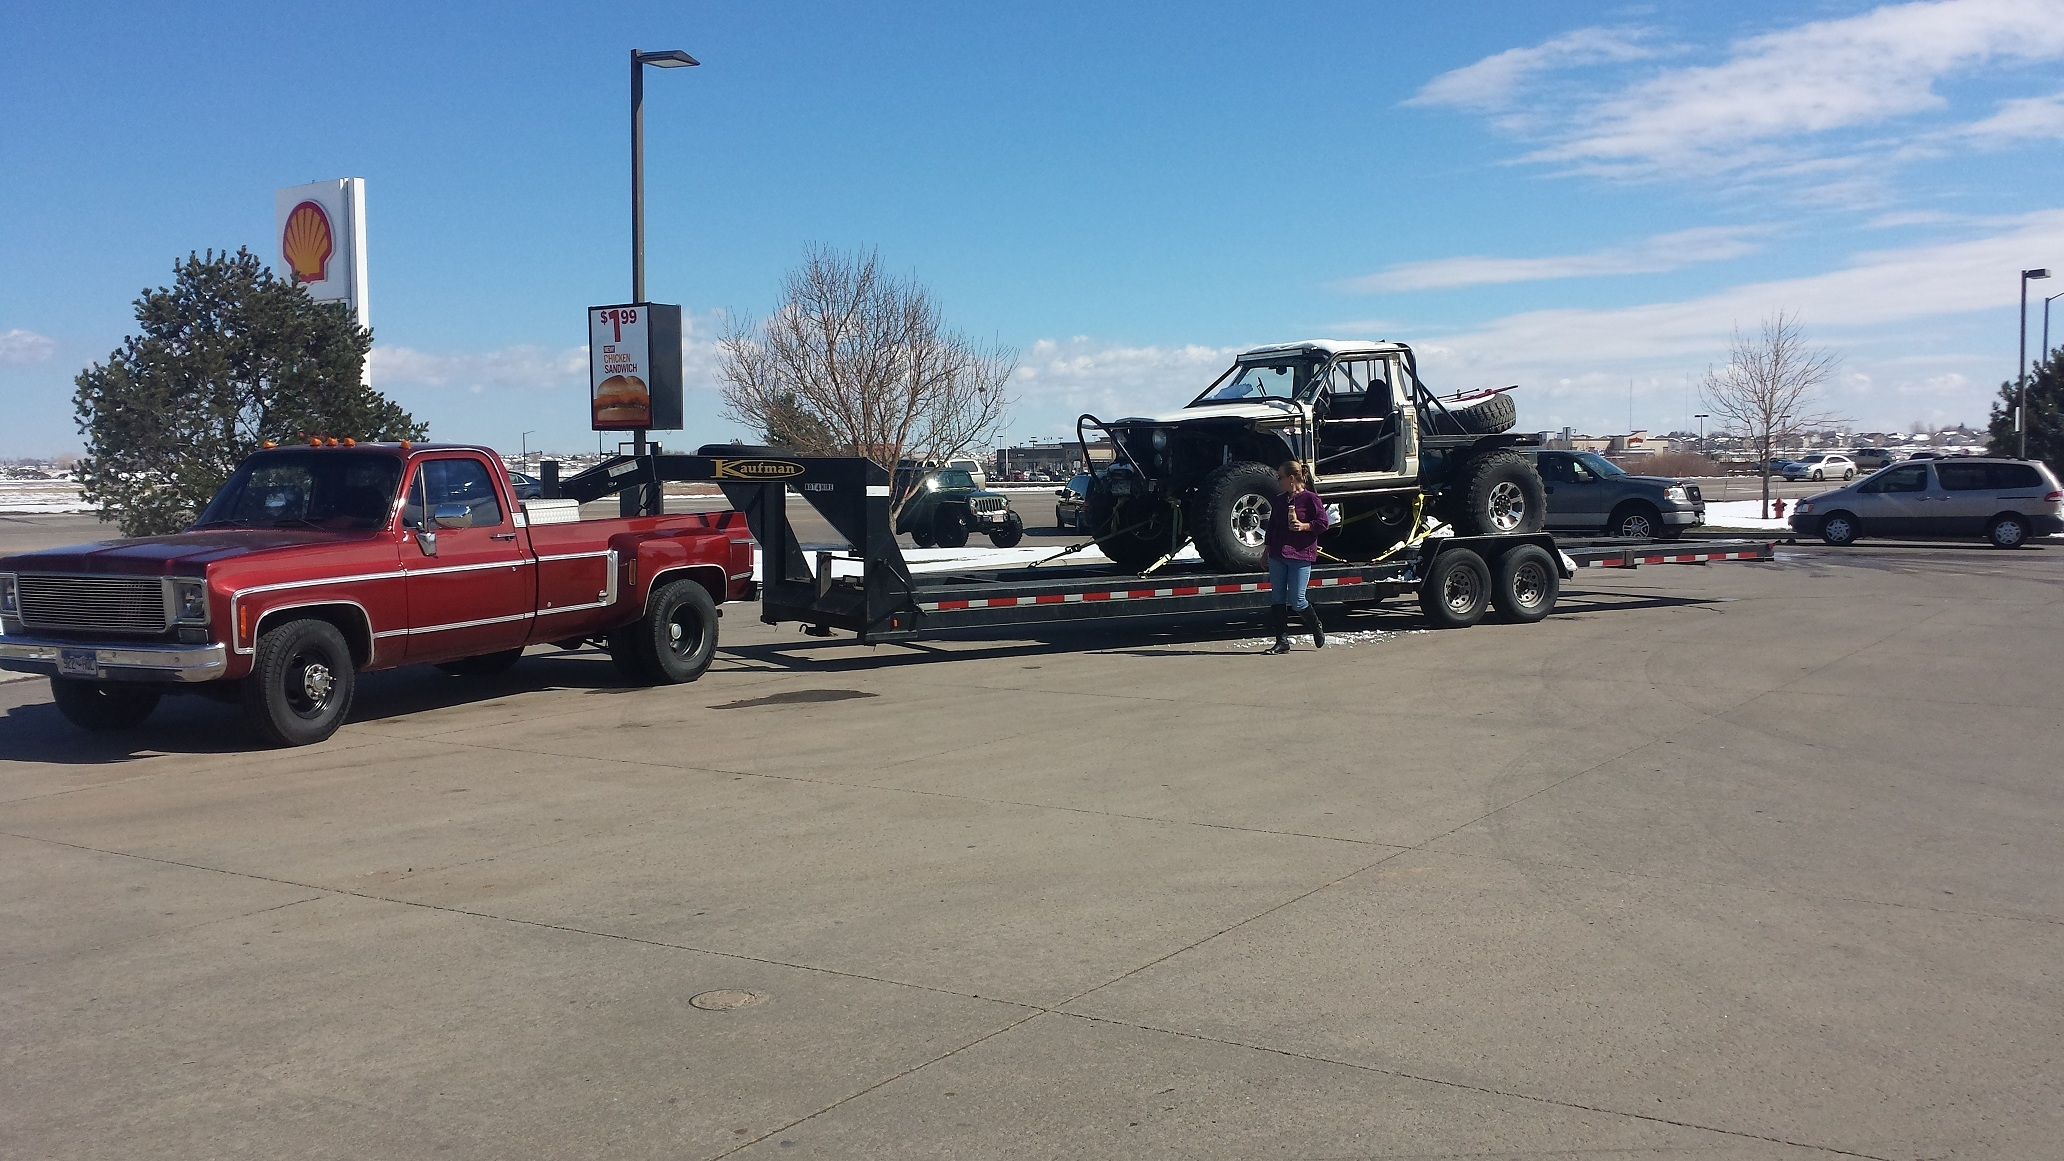 towing_the_honcho Cool Review About Chevy S10 tow Capacity with Breathtaking Gallery Cars Review